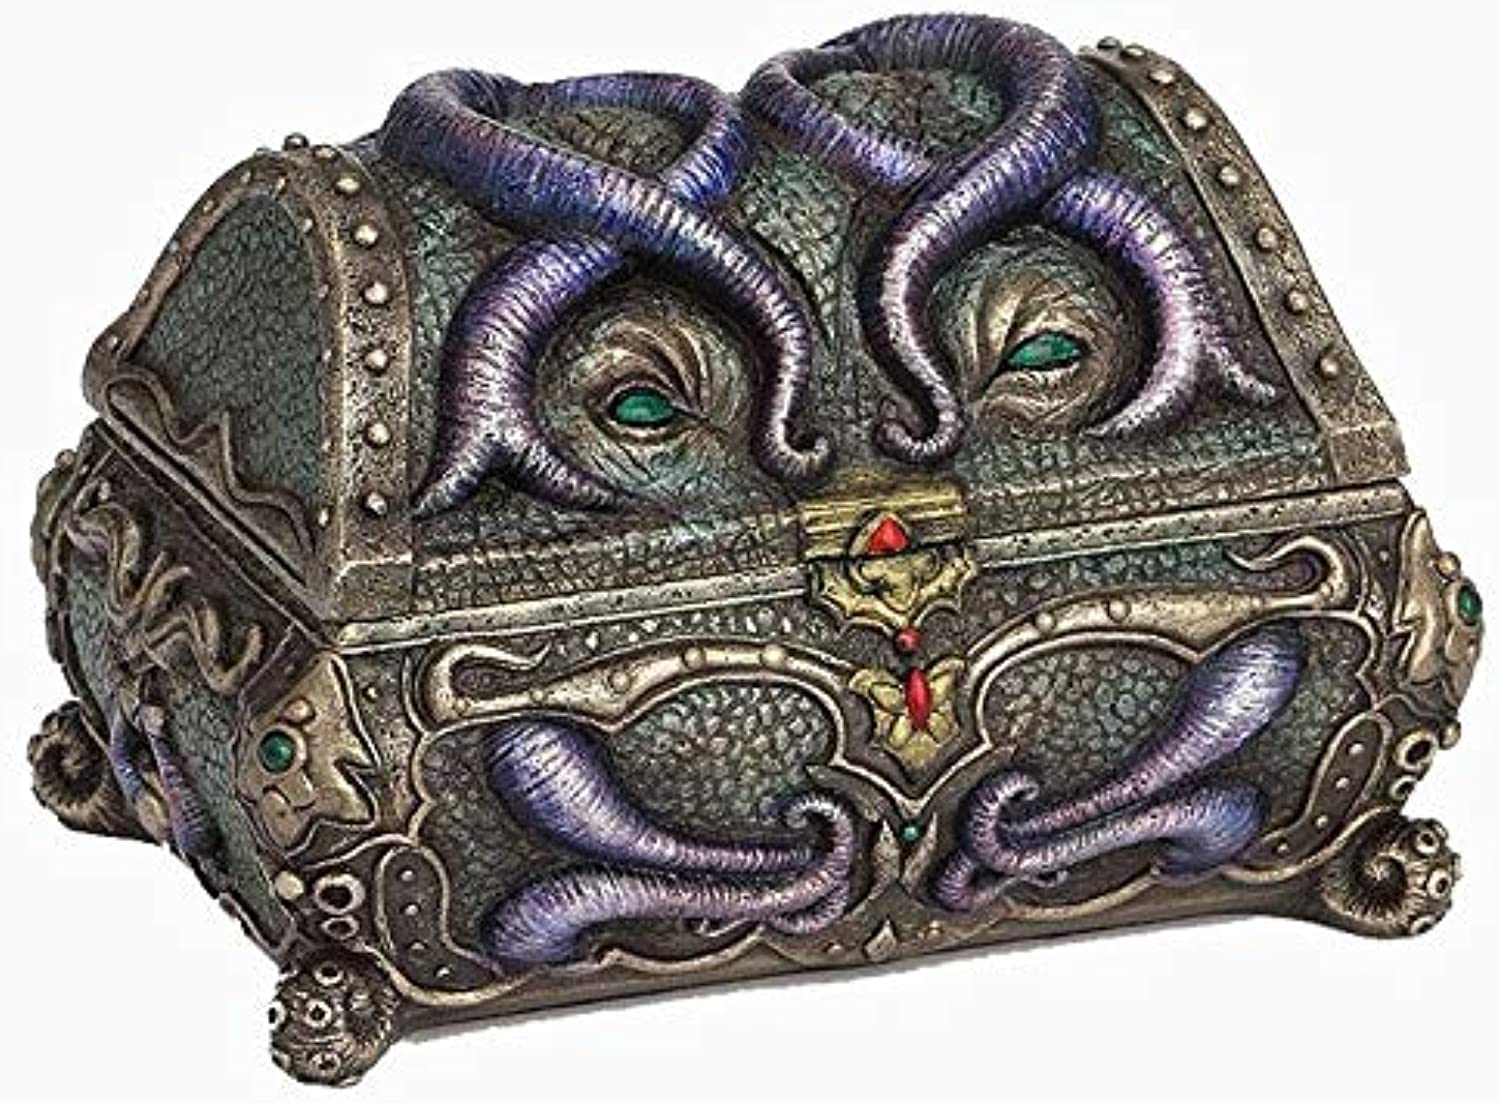 XoticBrands Octopus Mimic Chest Trinket Box - Cold Cast Bronze Sculpture